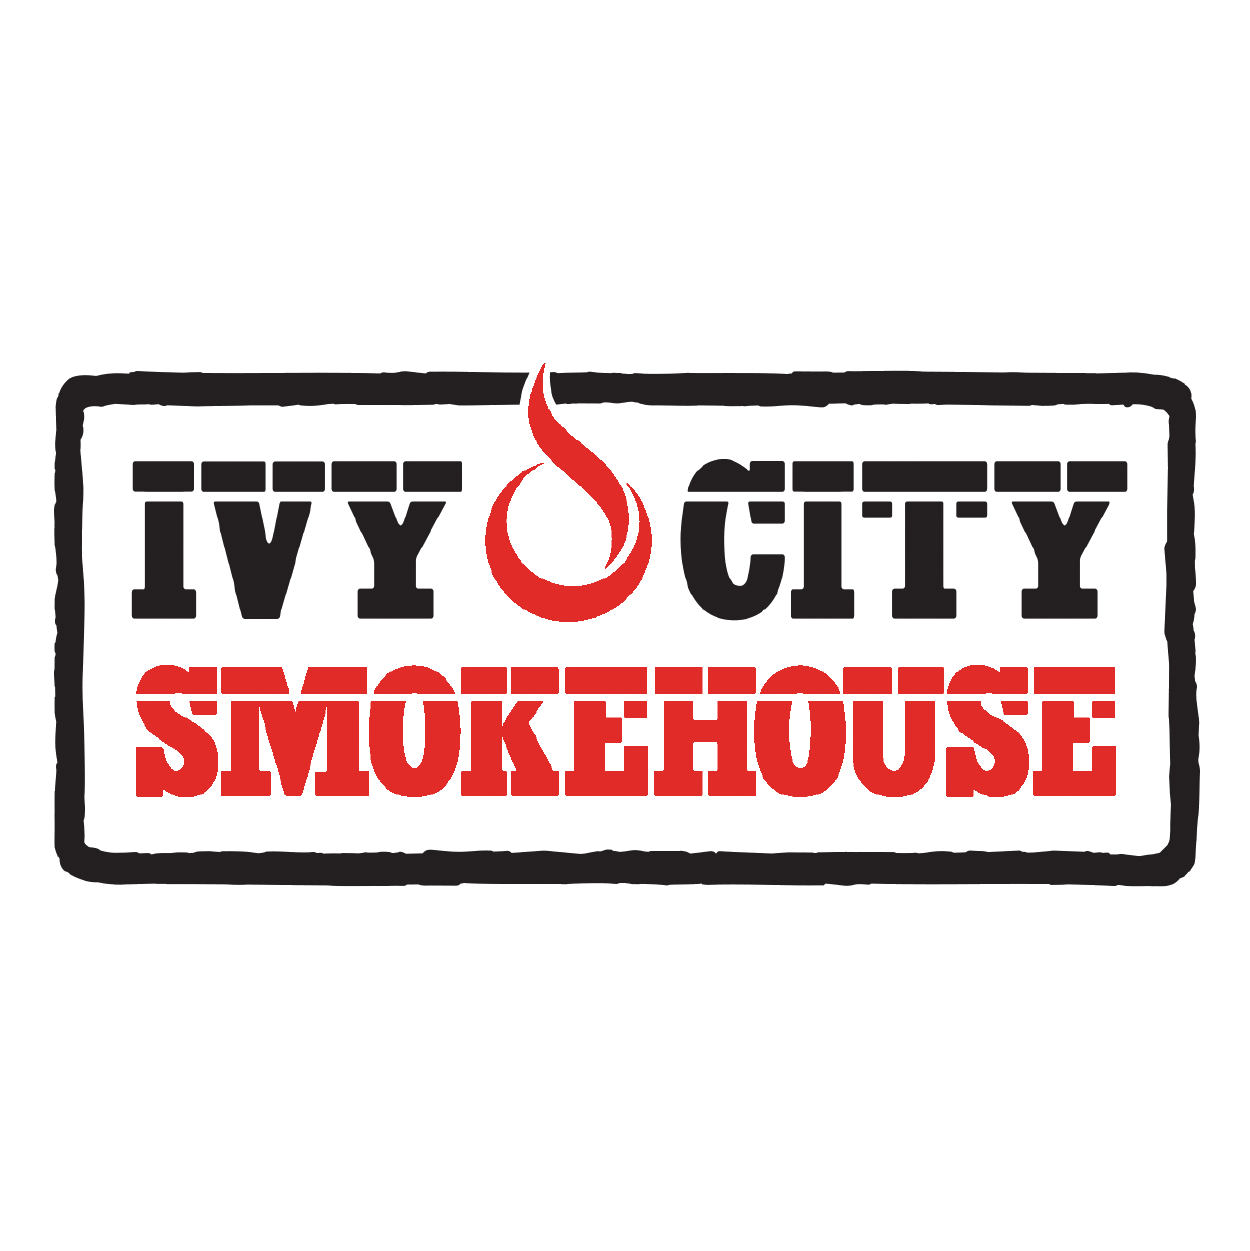 Ivy City Smokehouse-01.png